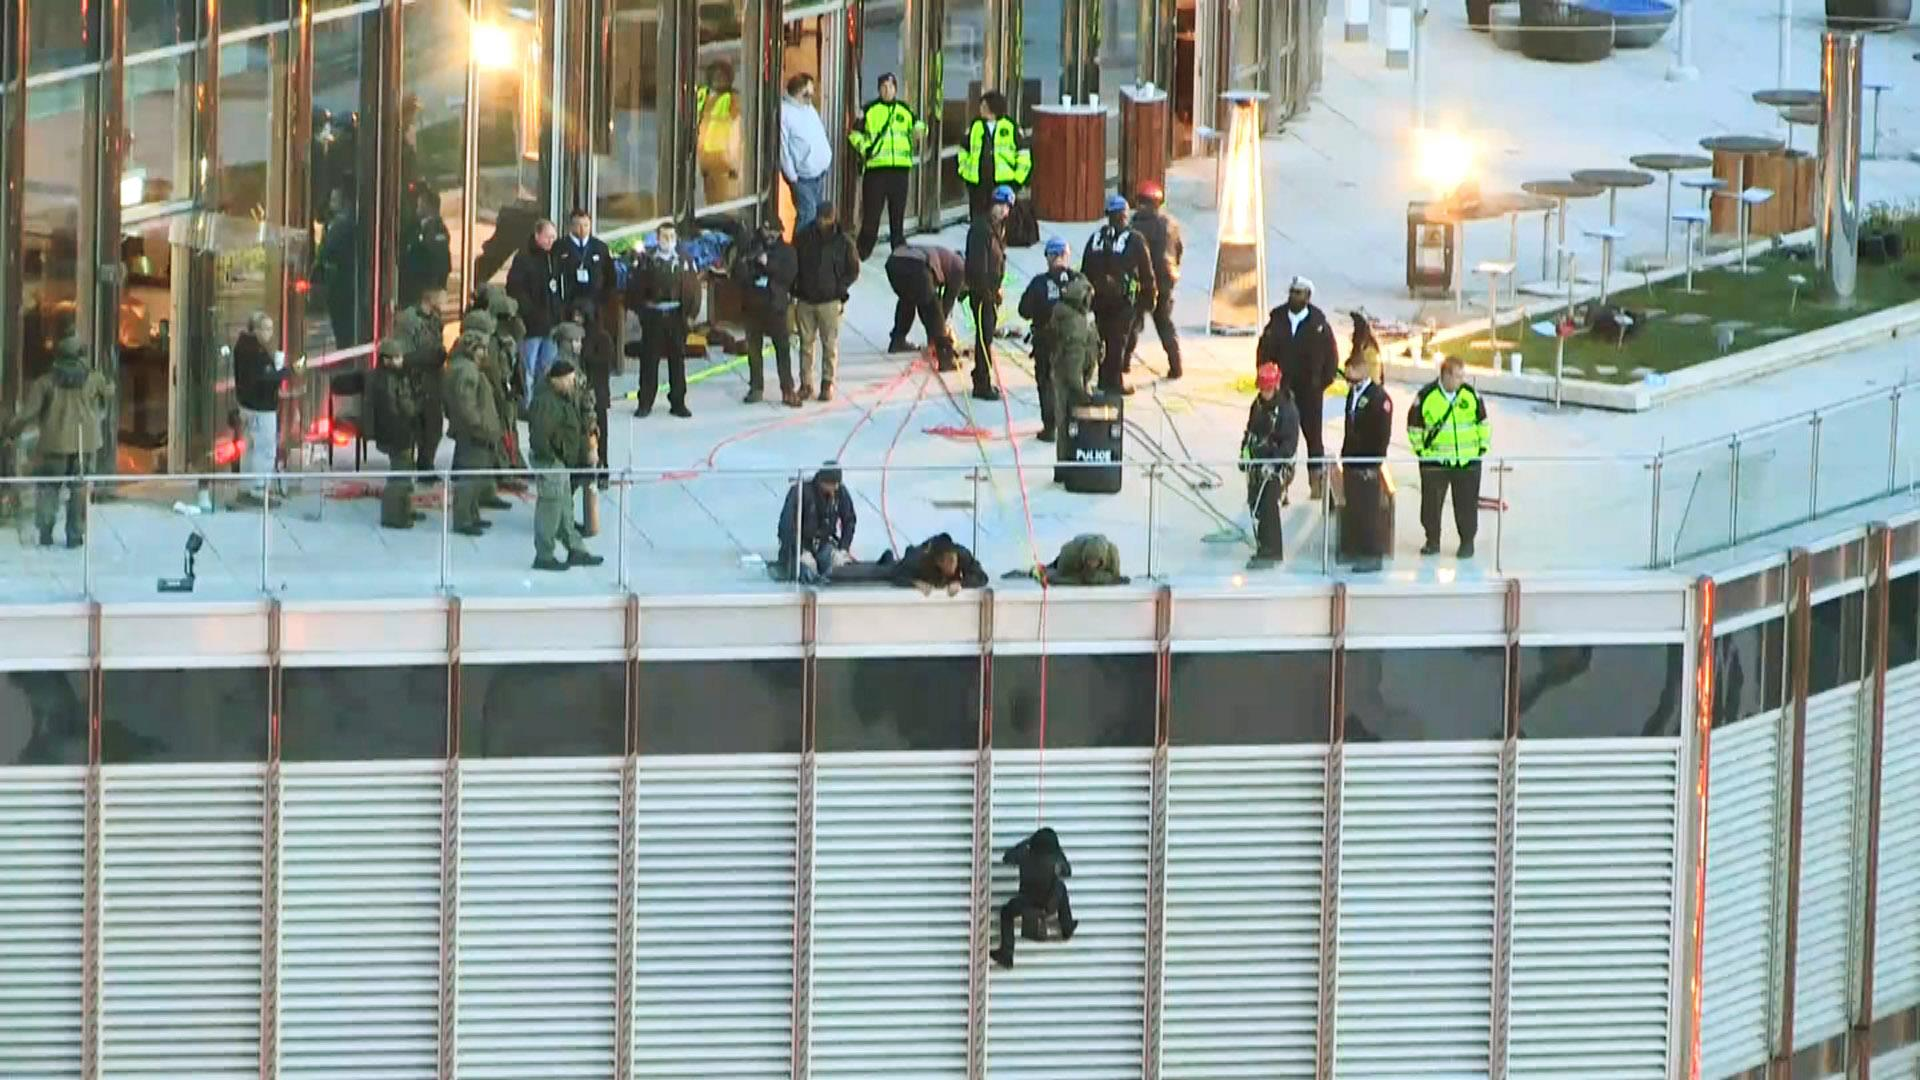 Man hangs off side of Chicago's Trump Tower for 13 hours before being taken into custody